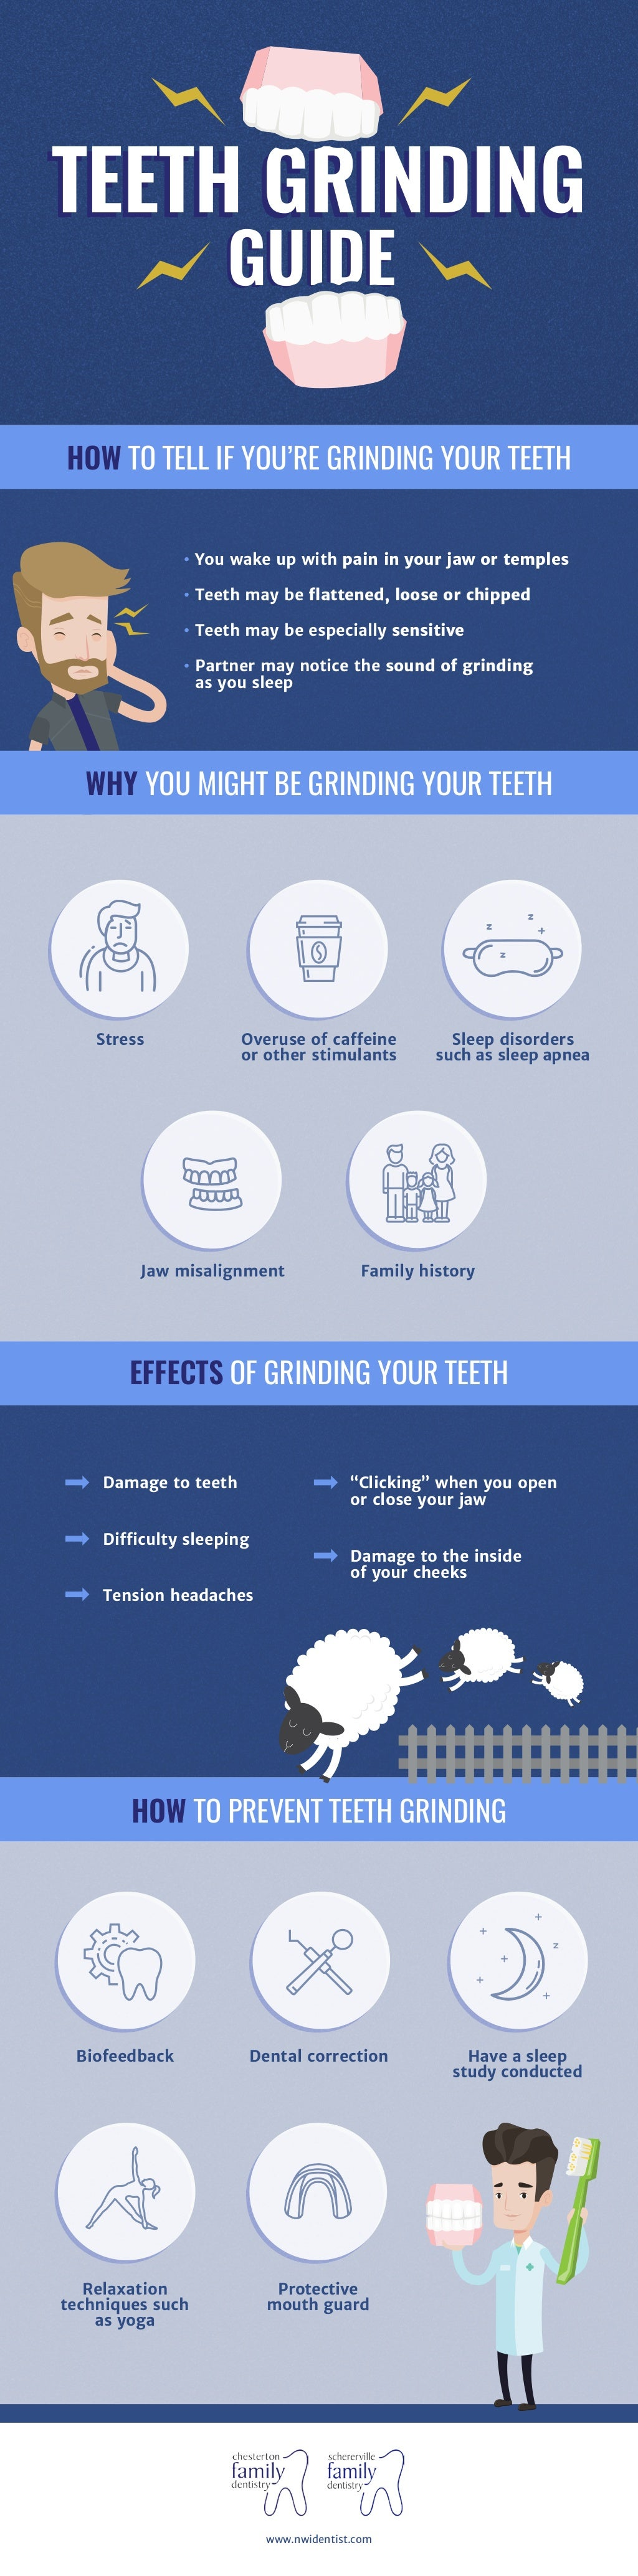 teeth grinding infographic